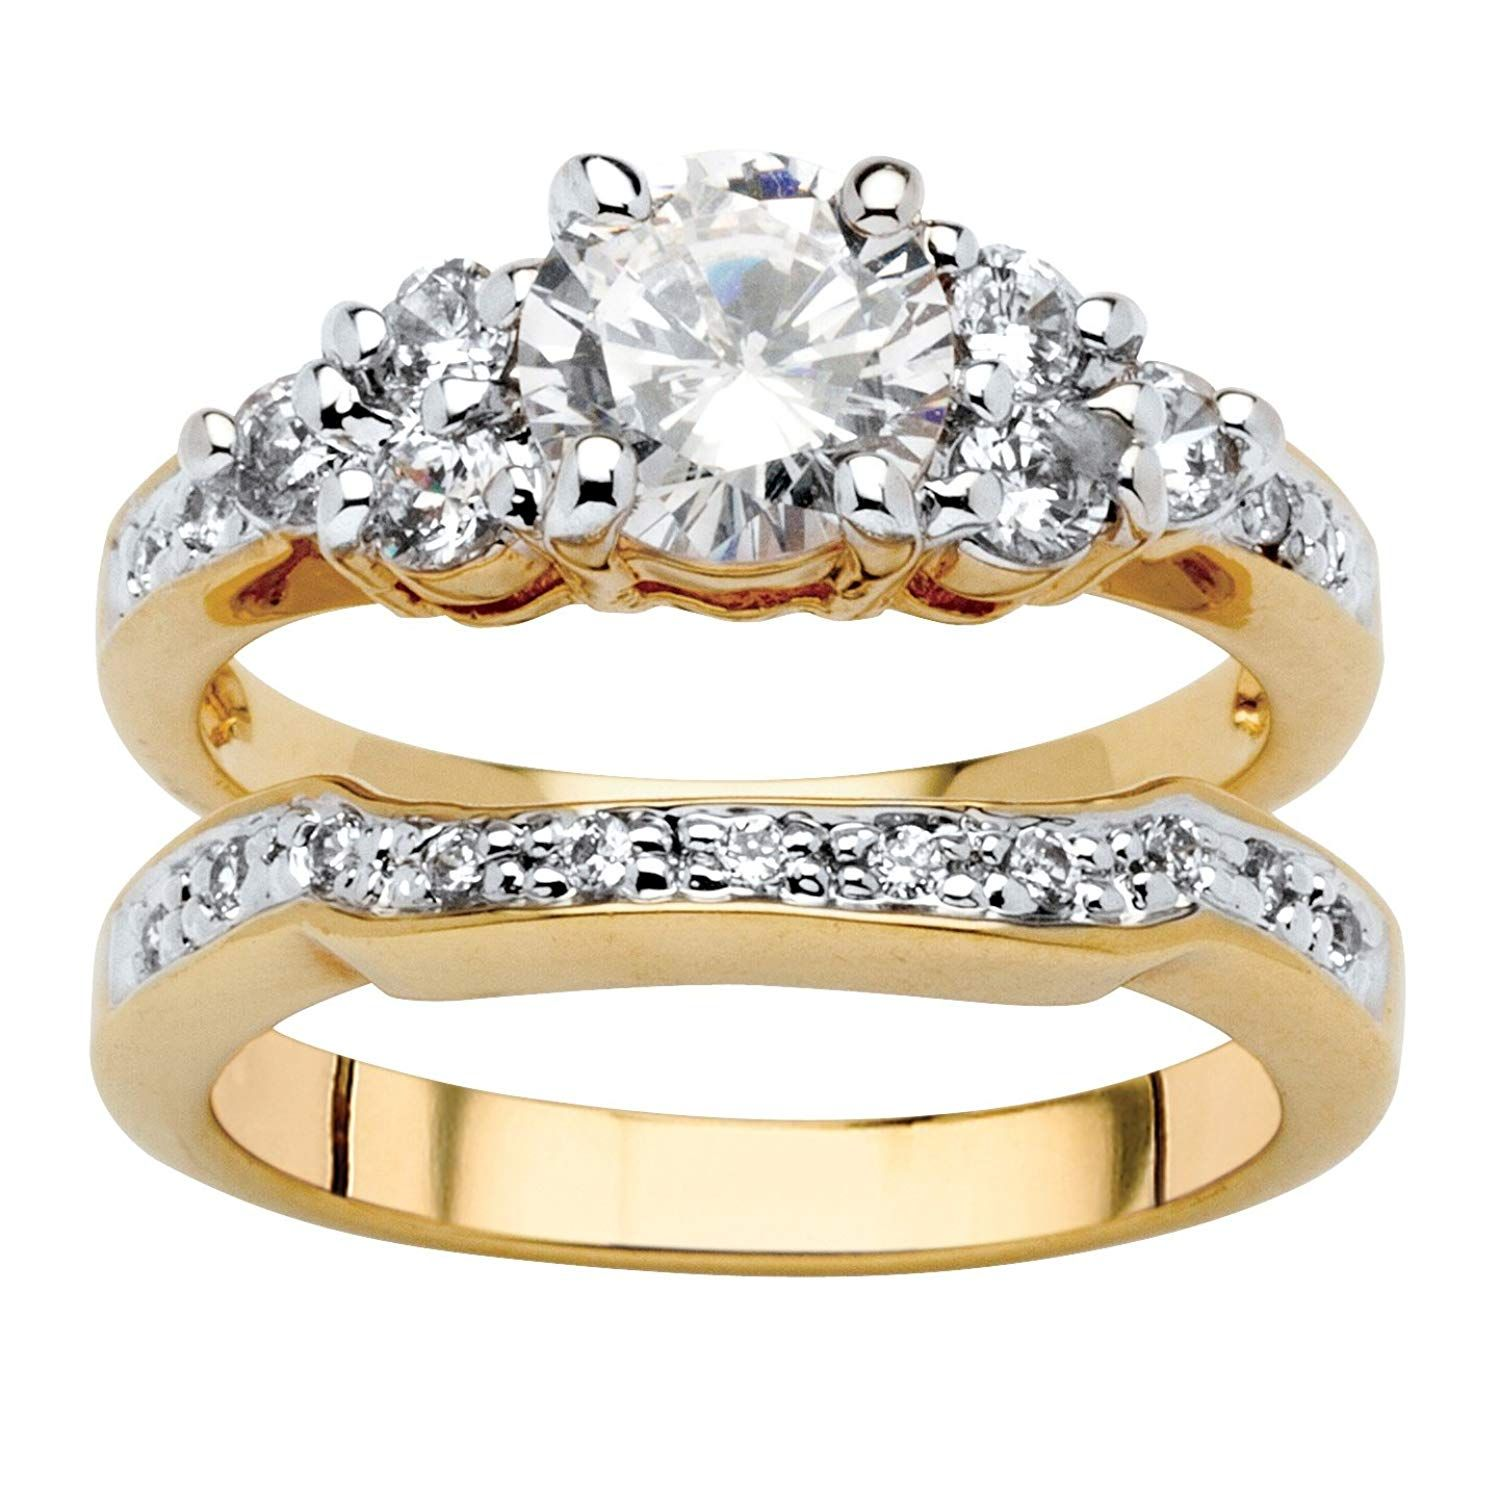 Palm Beach Jewelry 18k Yellow Gold Plated Round Cubic Zirconia Bridal Ring Set Do Hope You Actual Engagement Wedding Ring Sets Bridal Rings Bridal Ring Set